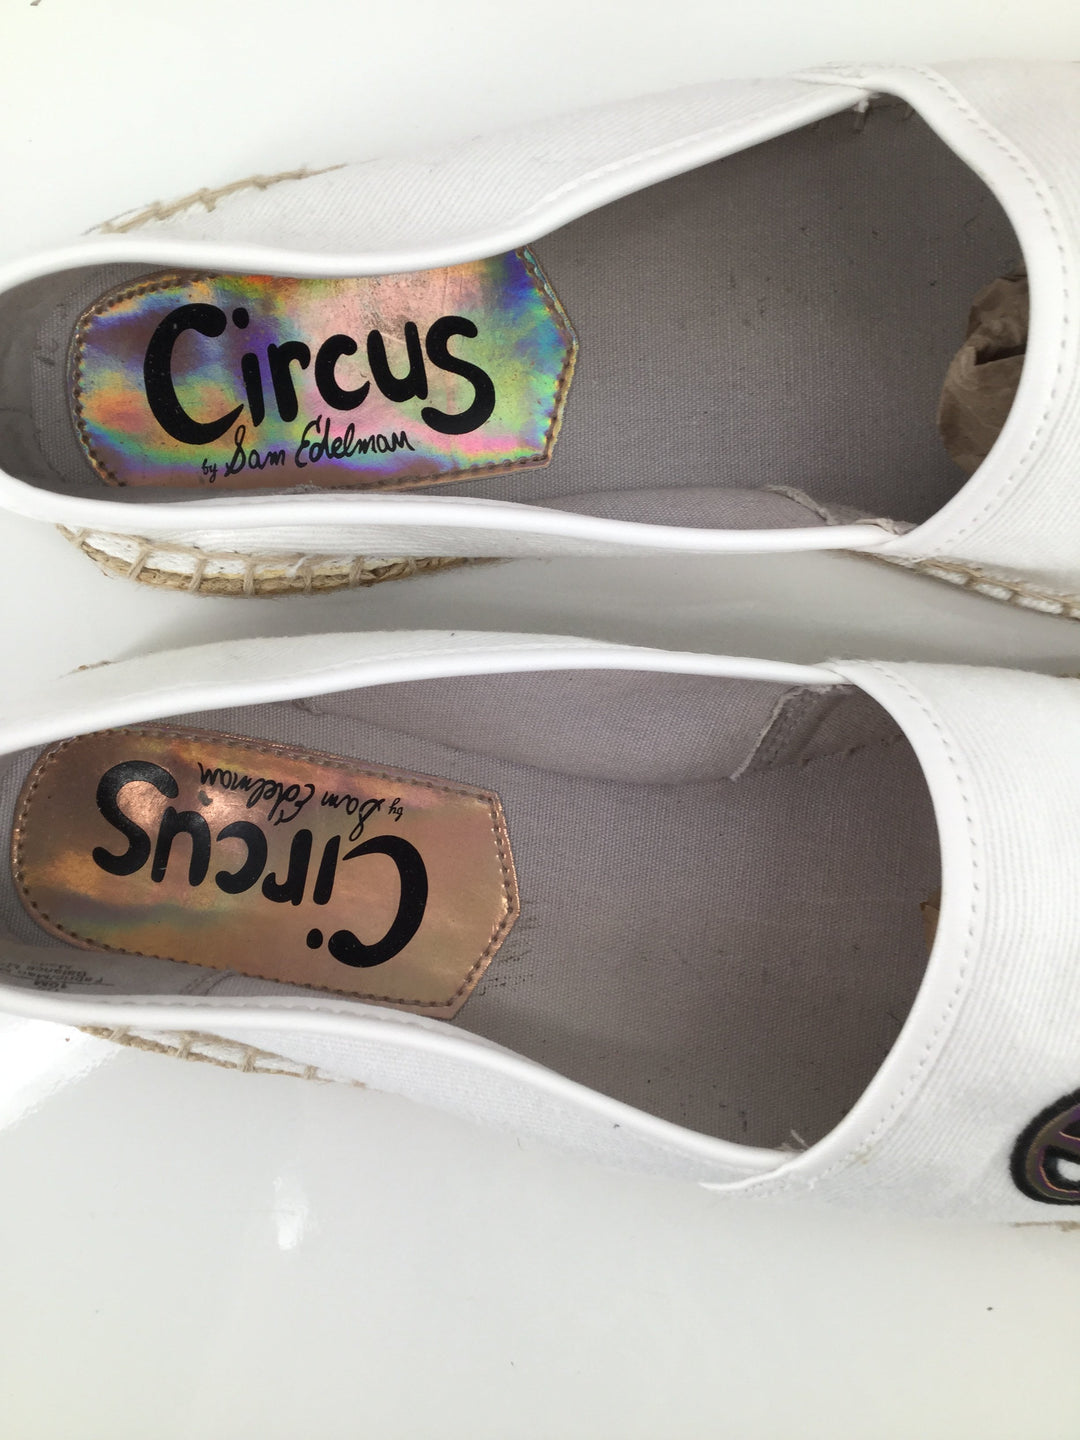 Circus By Sam Edelman Shoes Flats Size:10 - <P>FUN PAIR OF FLATS FROM CIRCUS BY SAM EDELMAN, SIZE 10.  EXCELLENT CONDITION. IT'S FIVE O'CLOCK SOMEWHERE, RIGHT?</P>